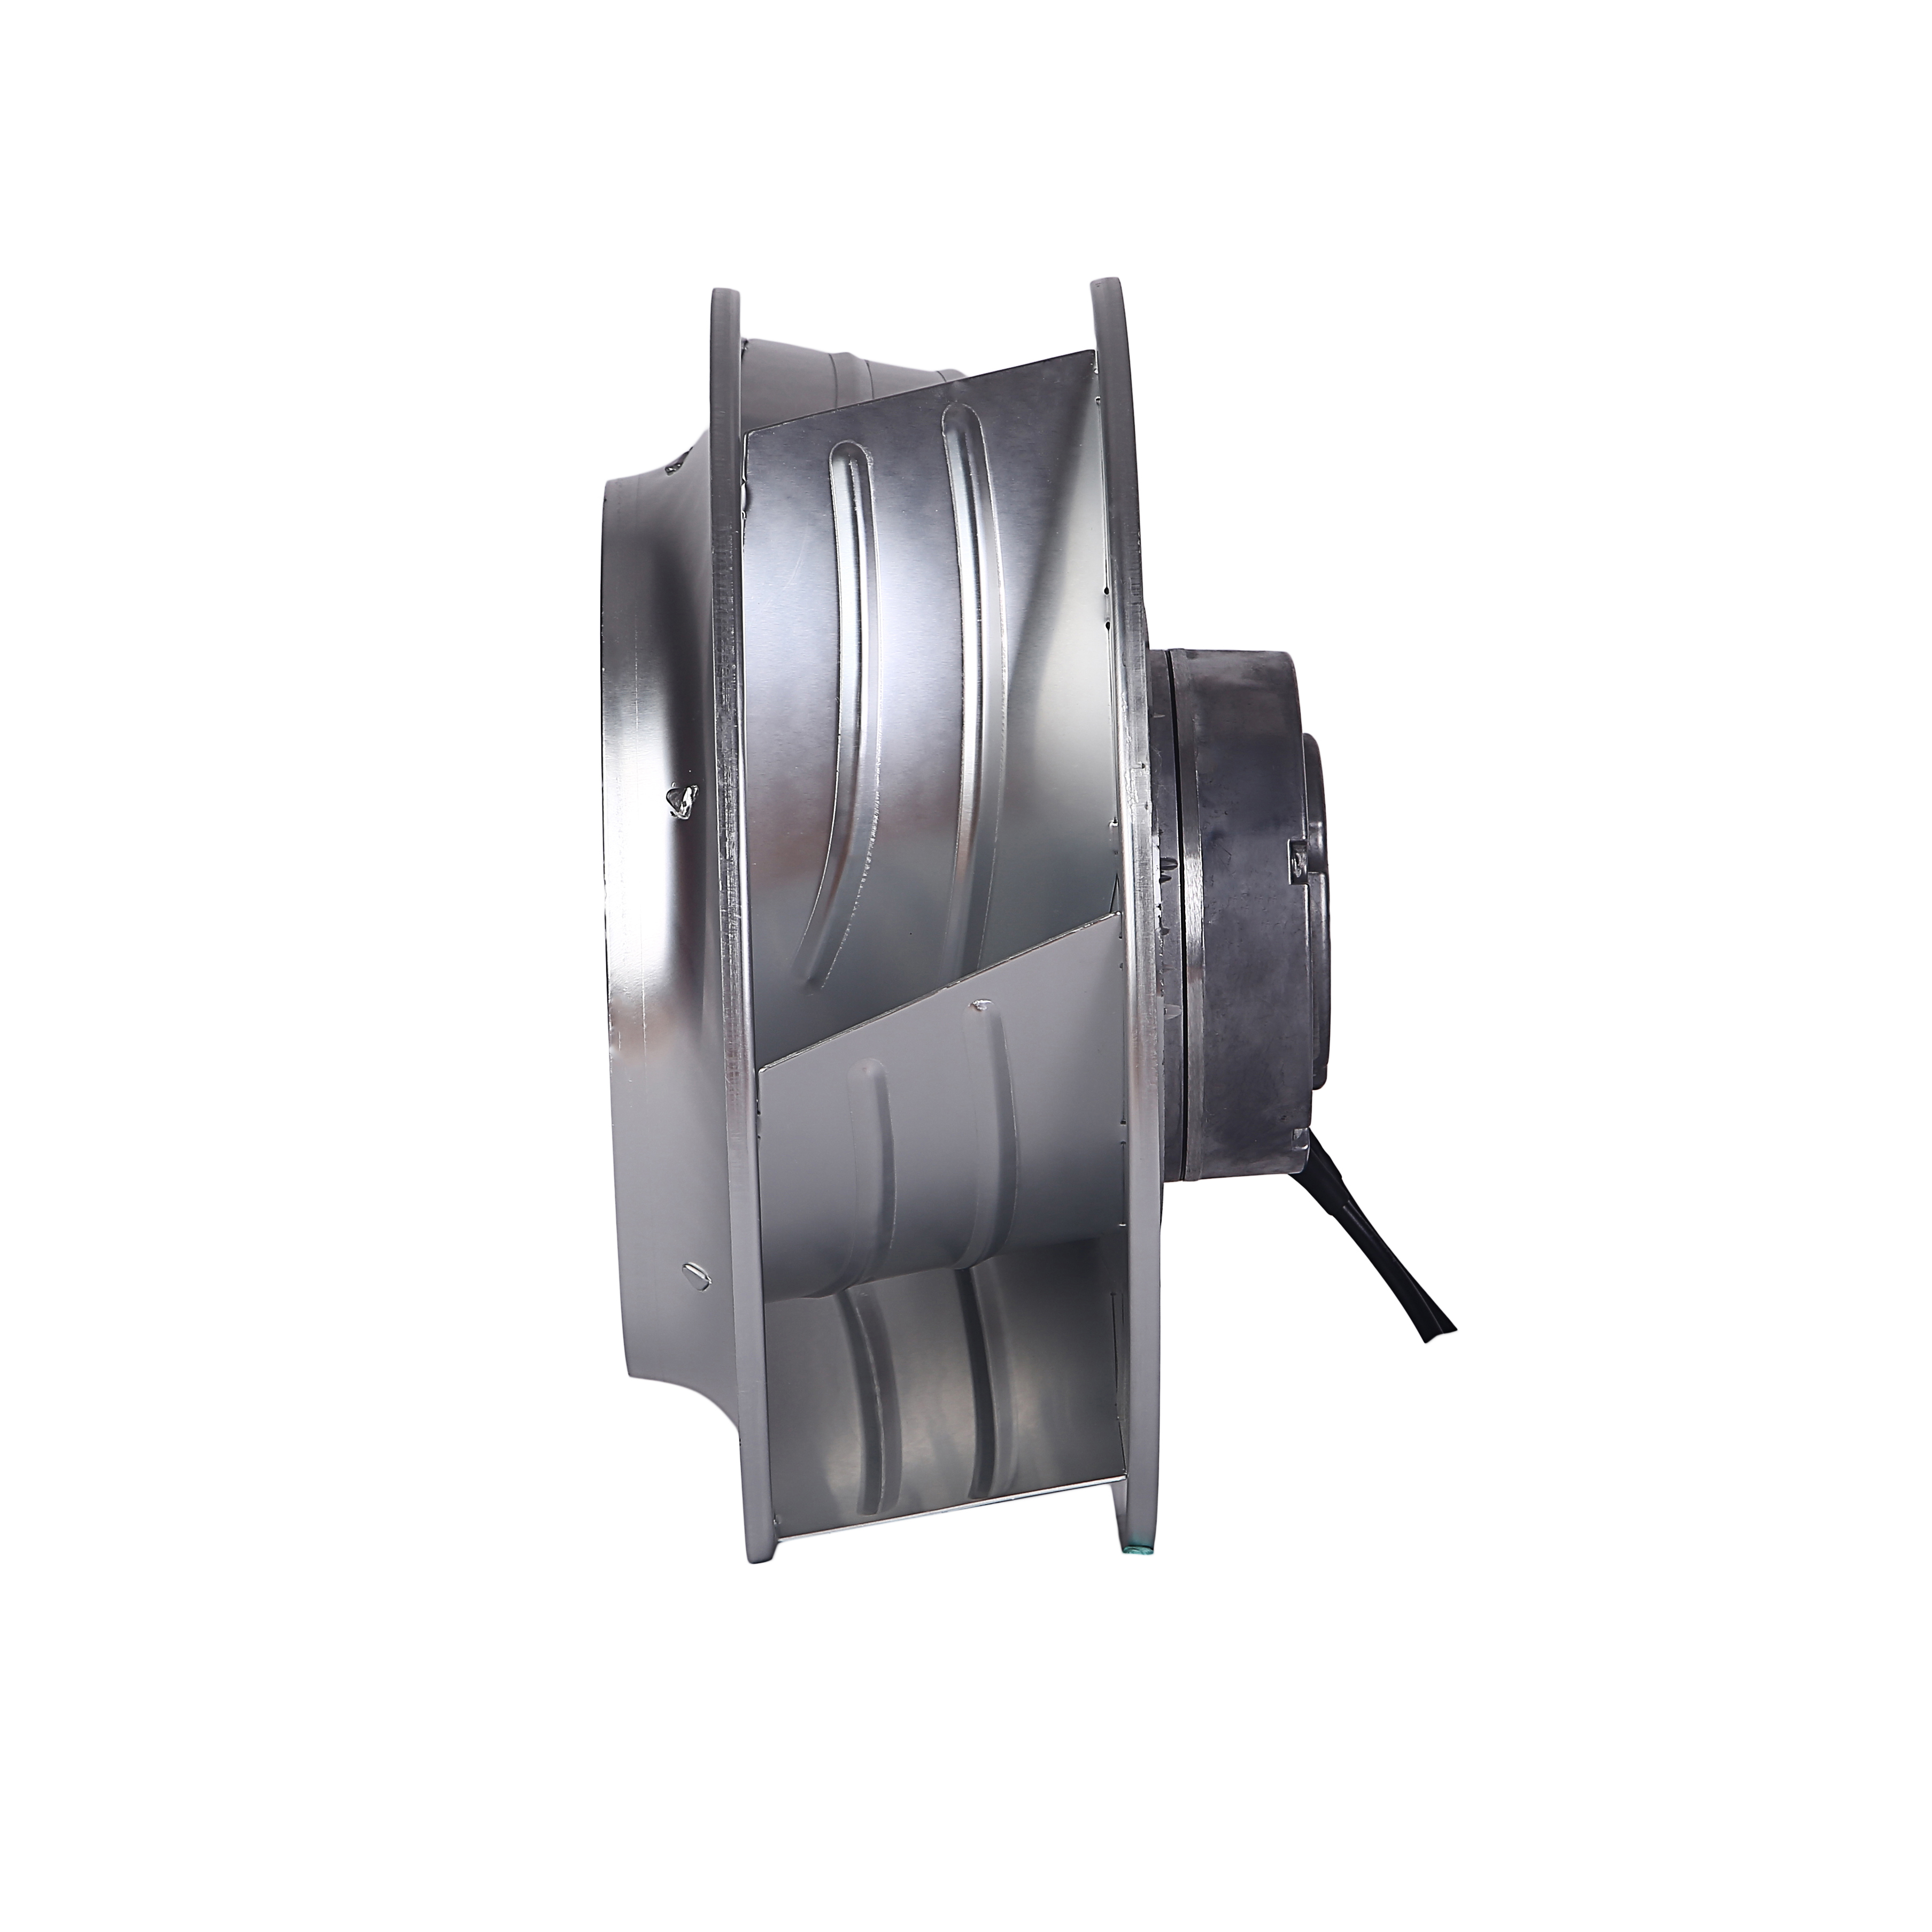 EC Centrifugal Fan Φ 355 - Backward Curved